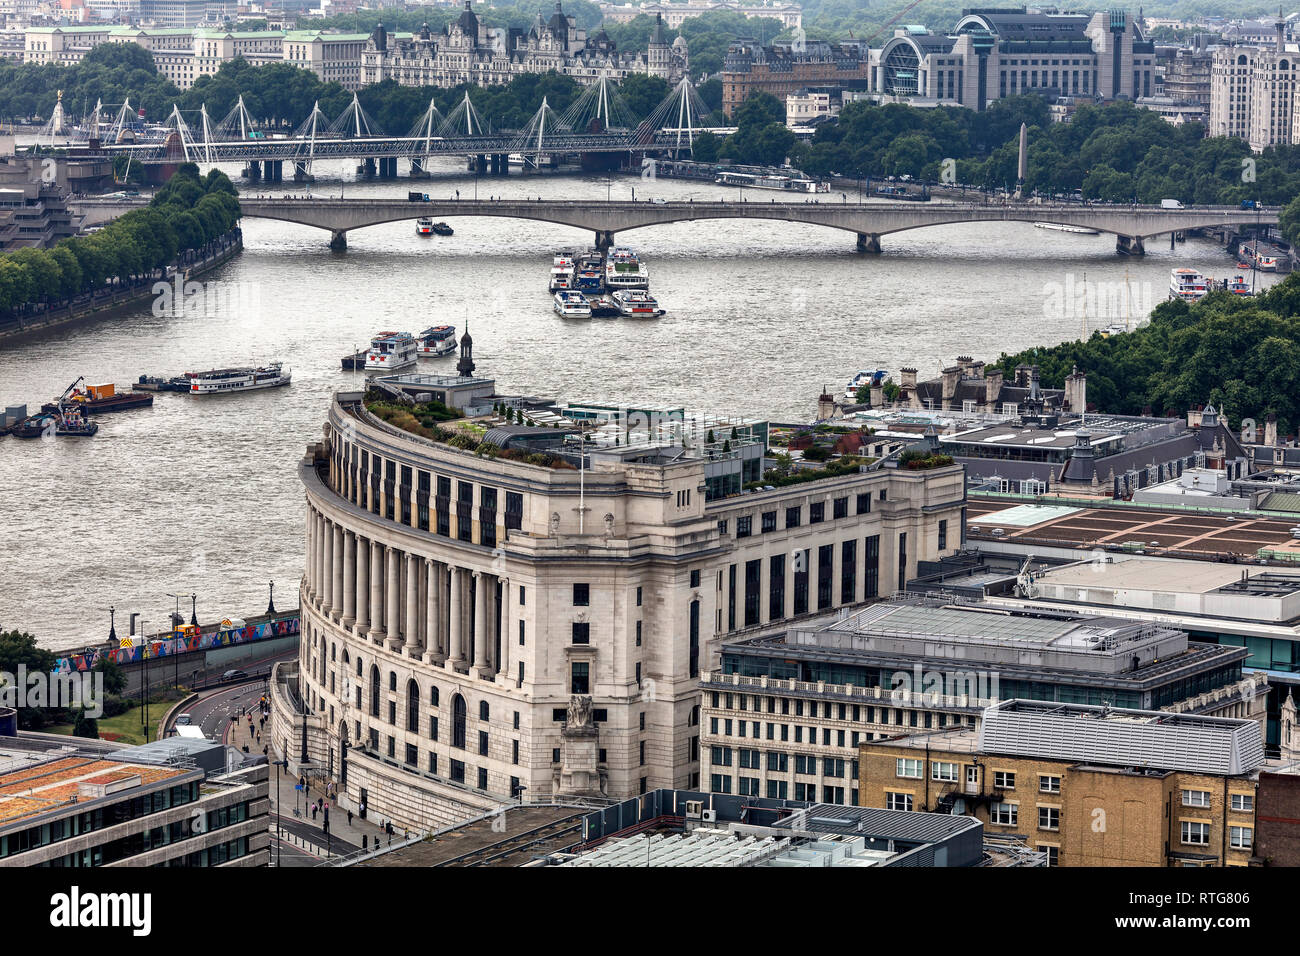 Unilever house (1933), Unilever global headquarters head office, Victoria embankment, Cityscape from the gallery of St Paul's Cathedral, London, Engla - Stock Image